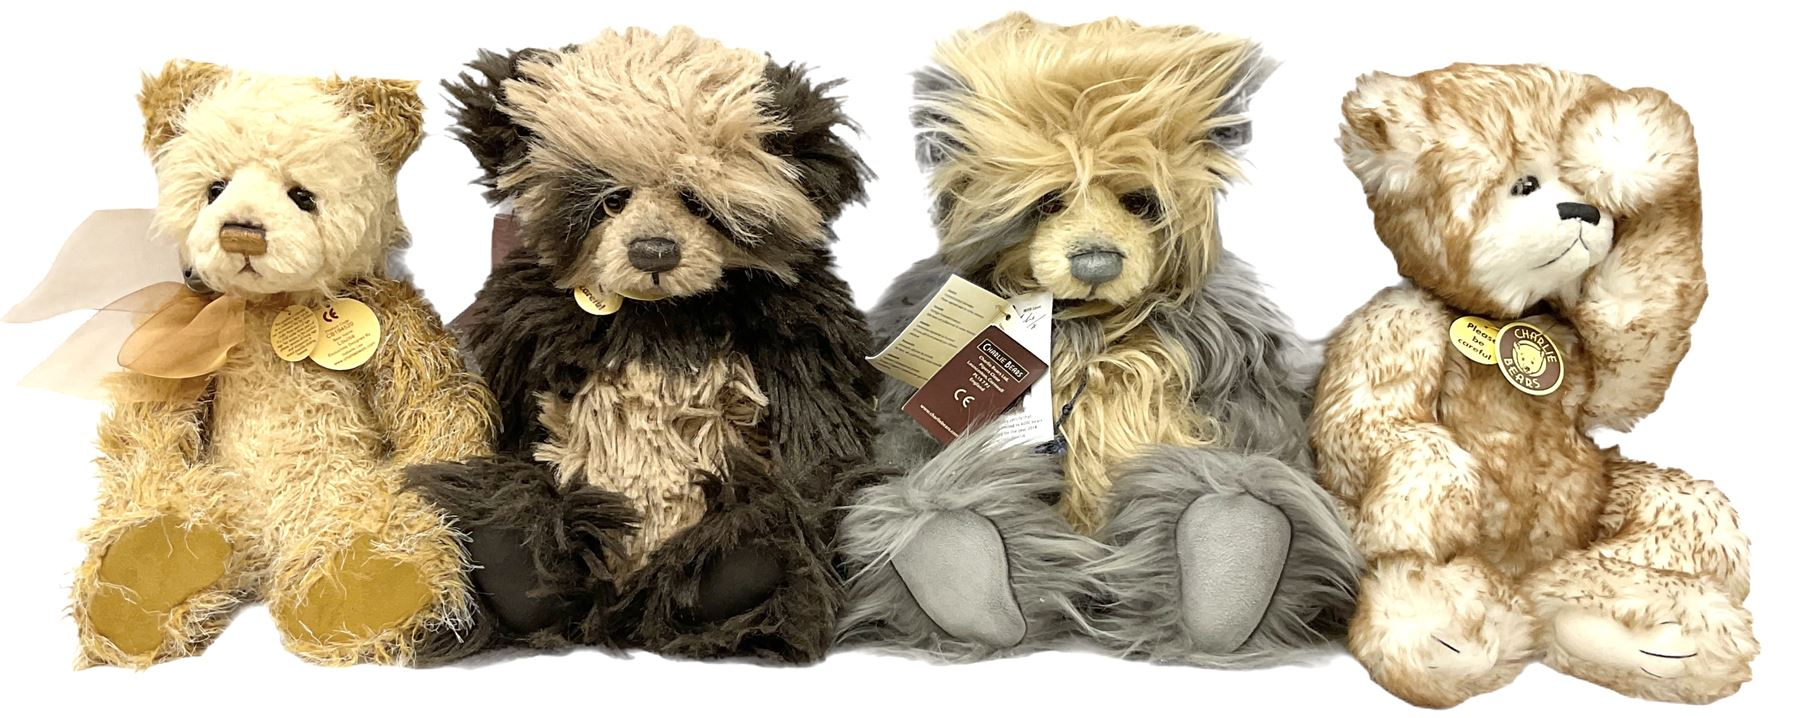 Four Charlie Bears - 'Parker' designed by Heather Lyell No.CB110307; 'Louise' No.CB194520; 'Phoenix'